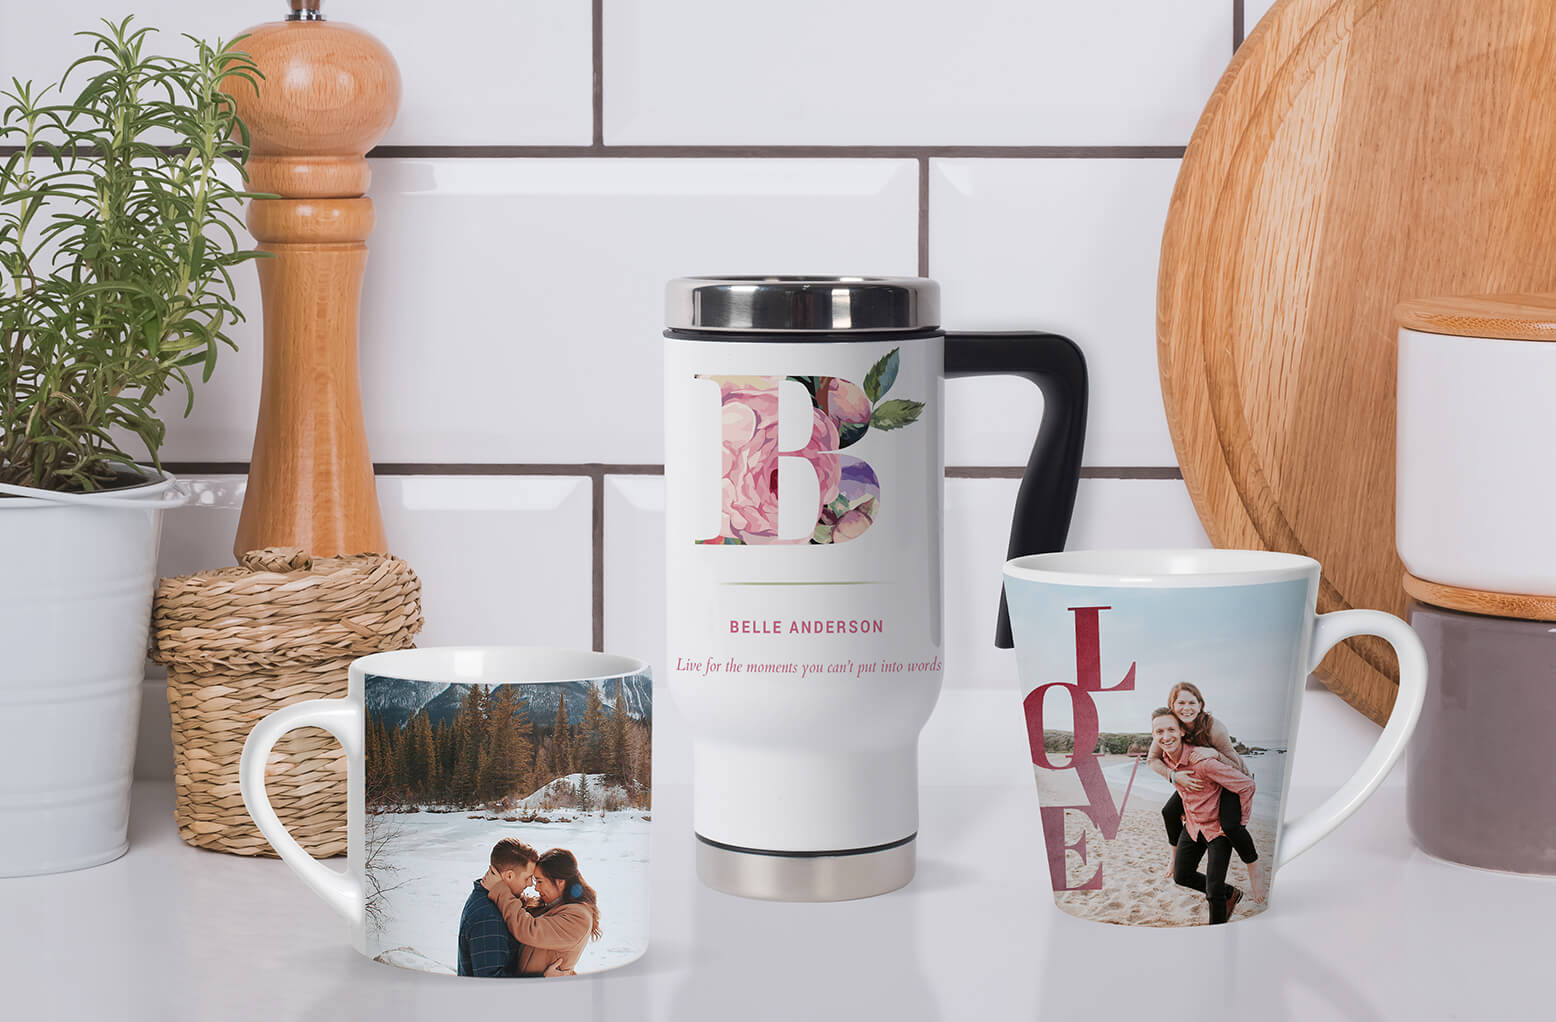 Wedding Gifts Store: Photo Books, Wedding Cards, Travel Albums